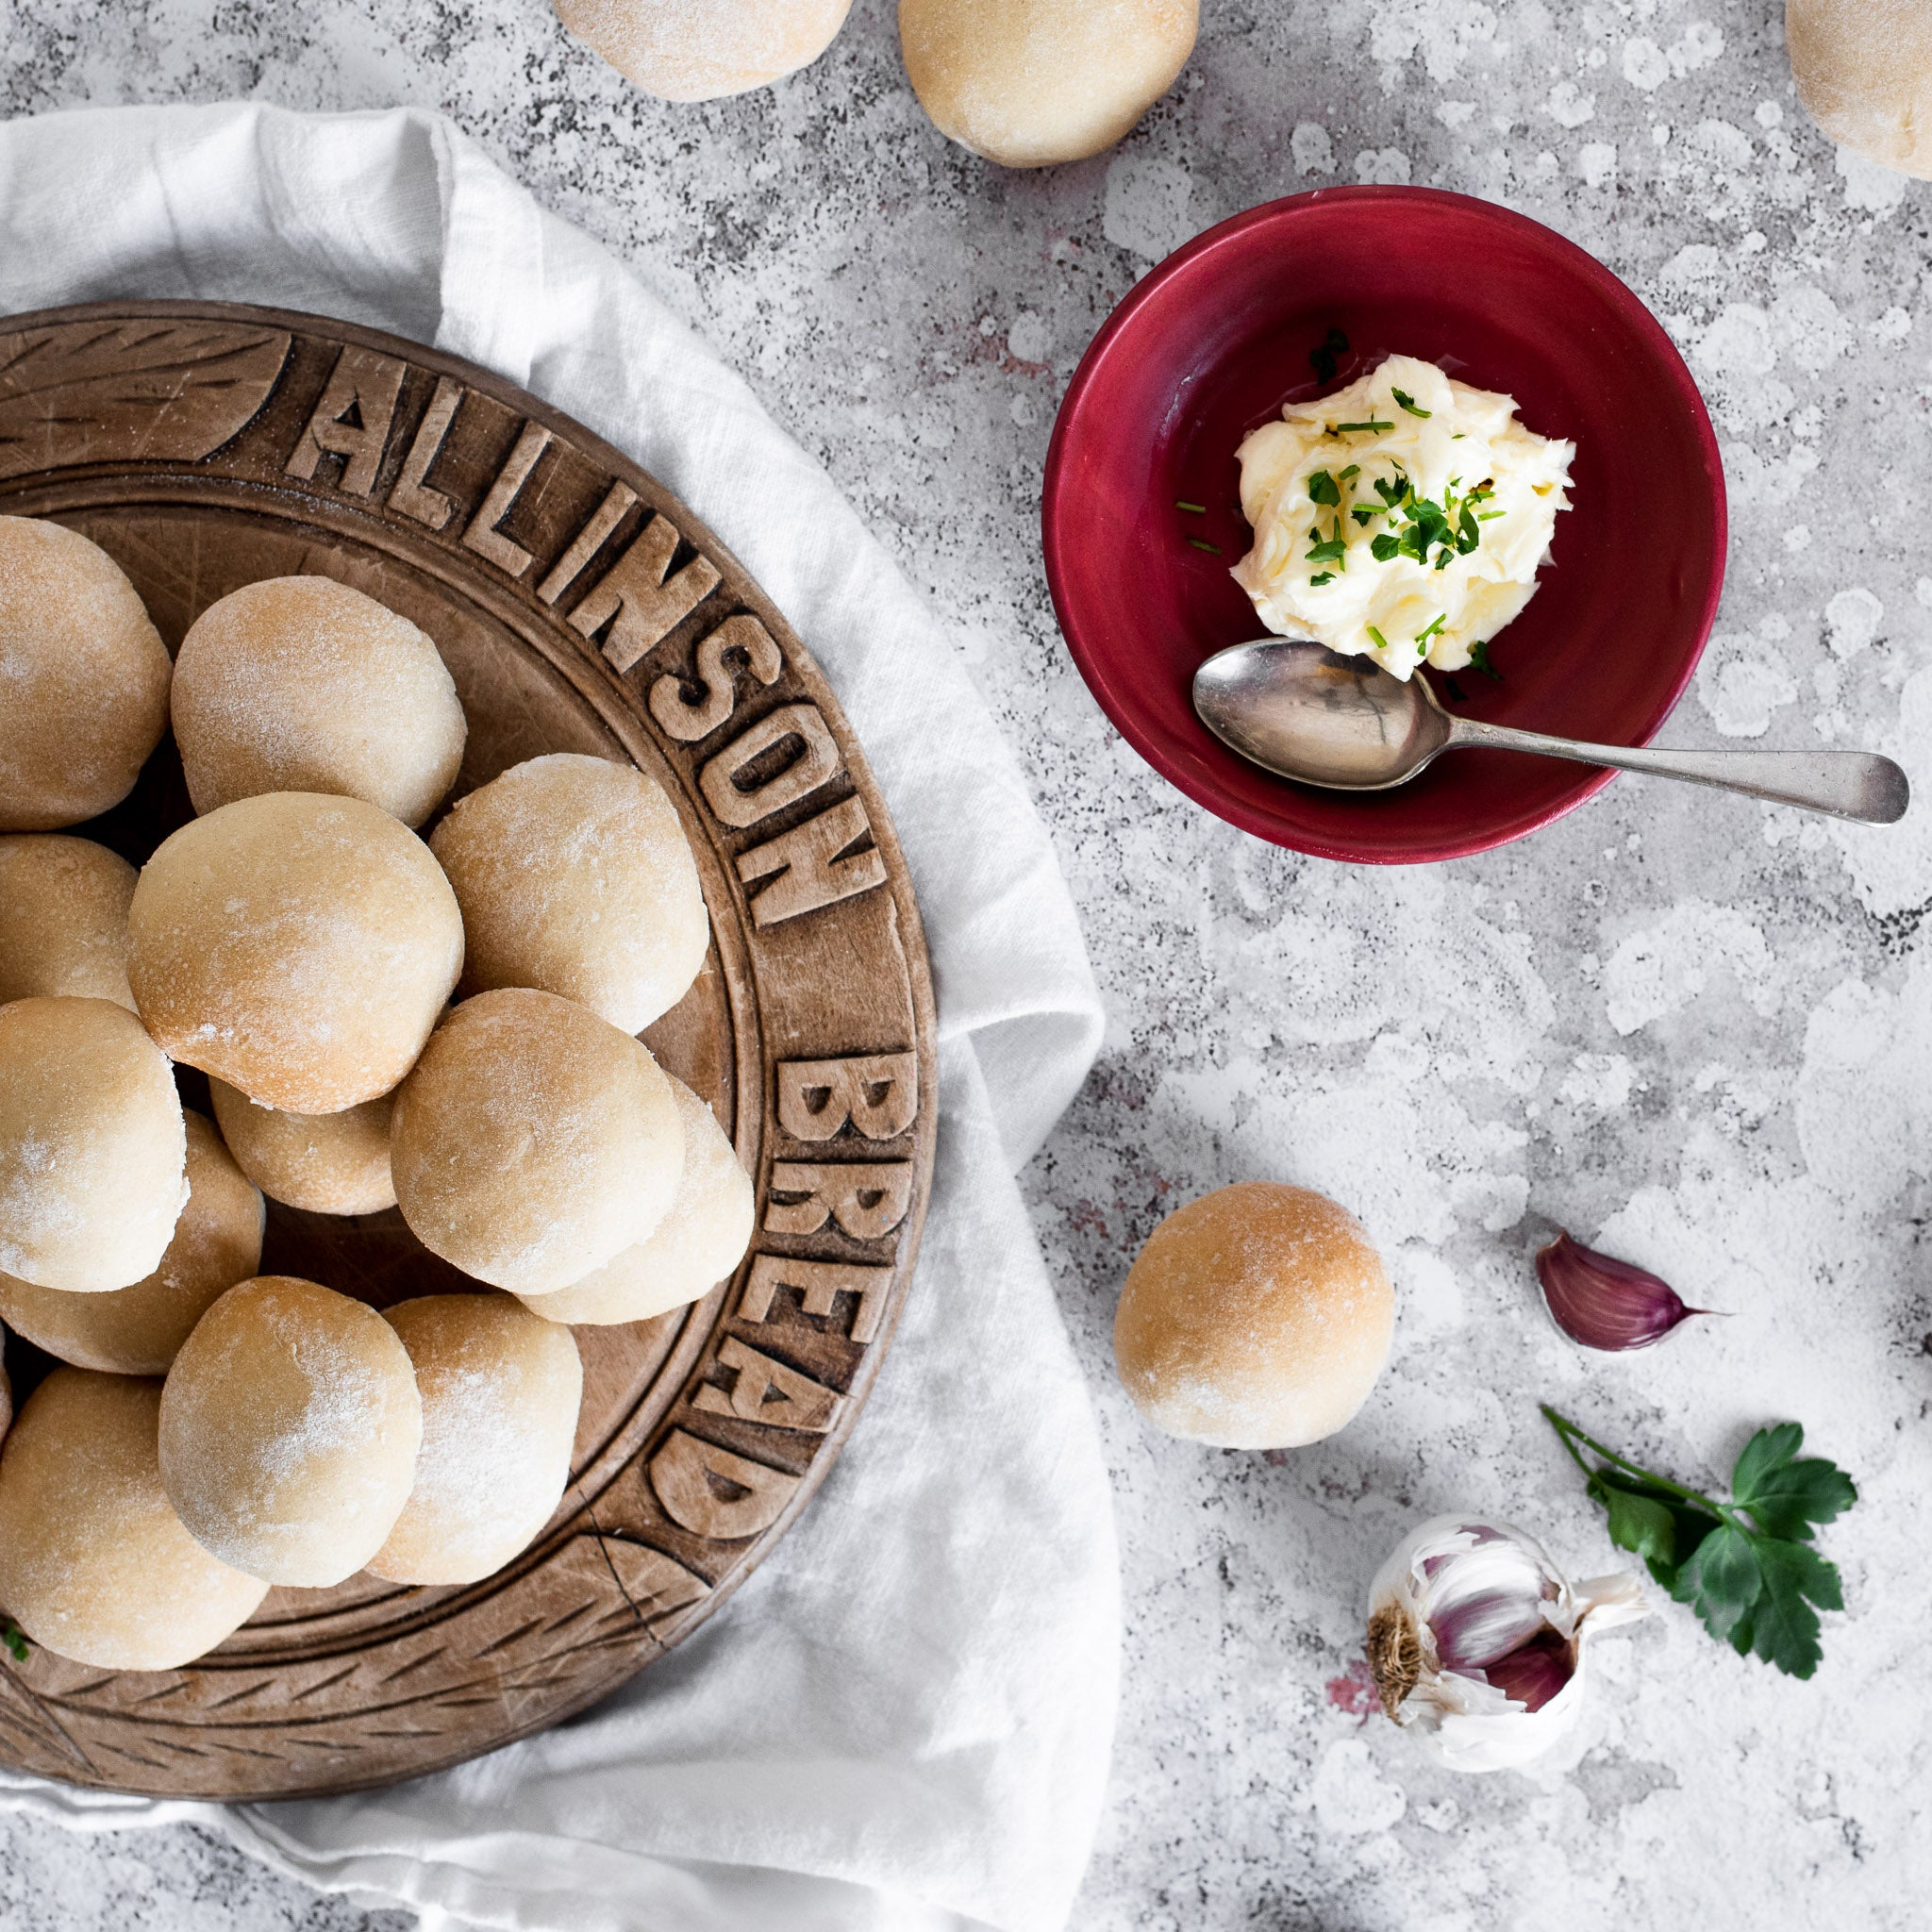 Allinson-s-Dough-Balls-11-Baking-Mad-12-(2).jpg